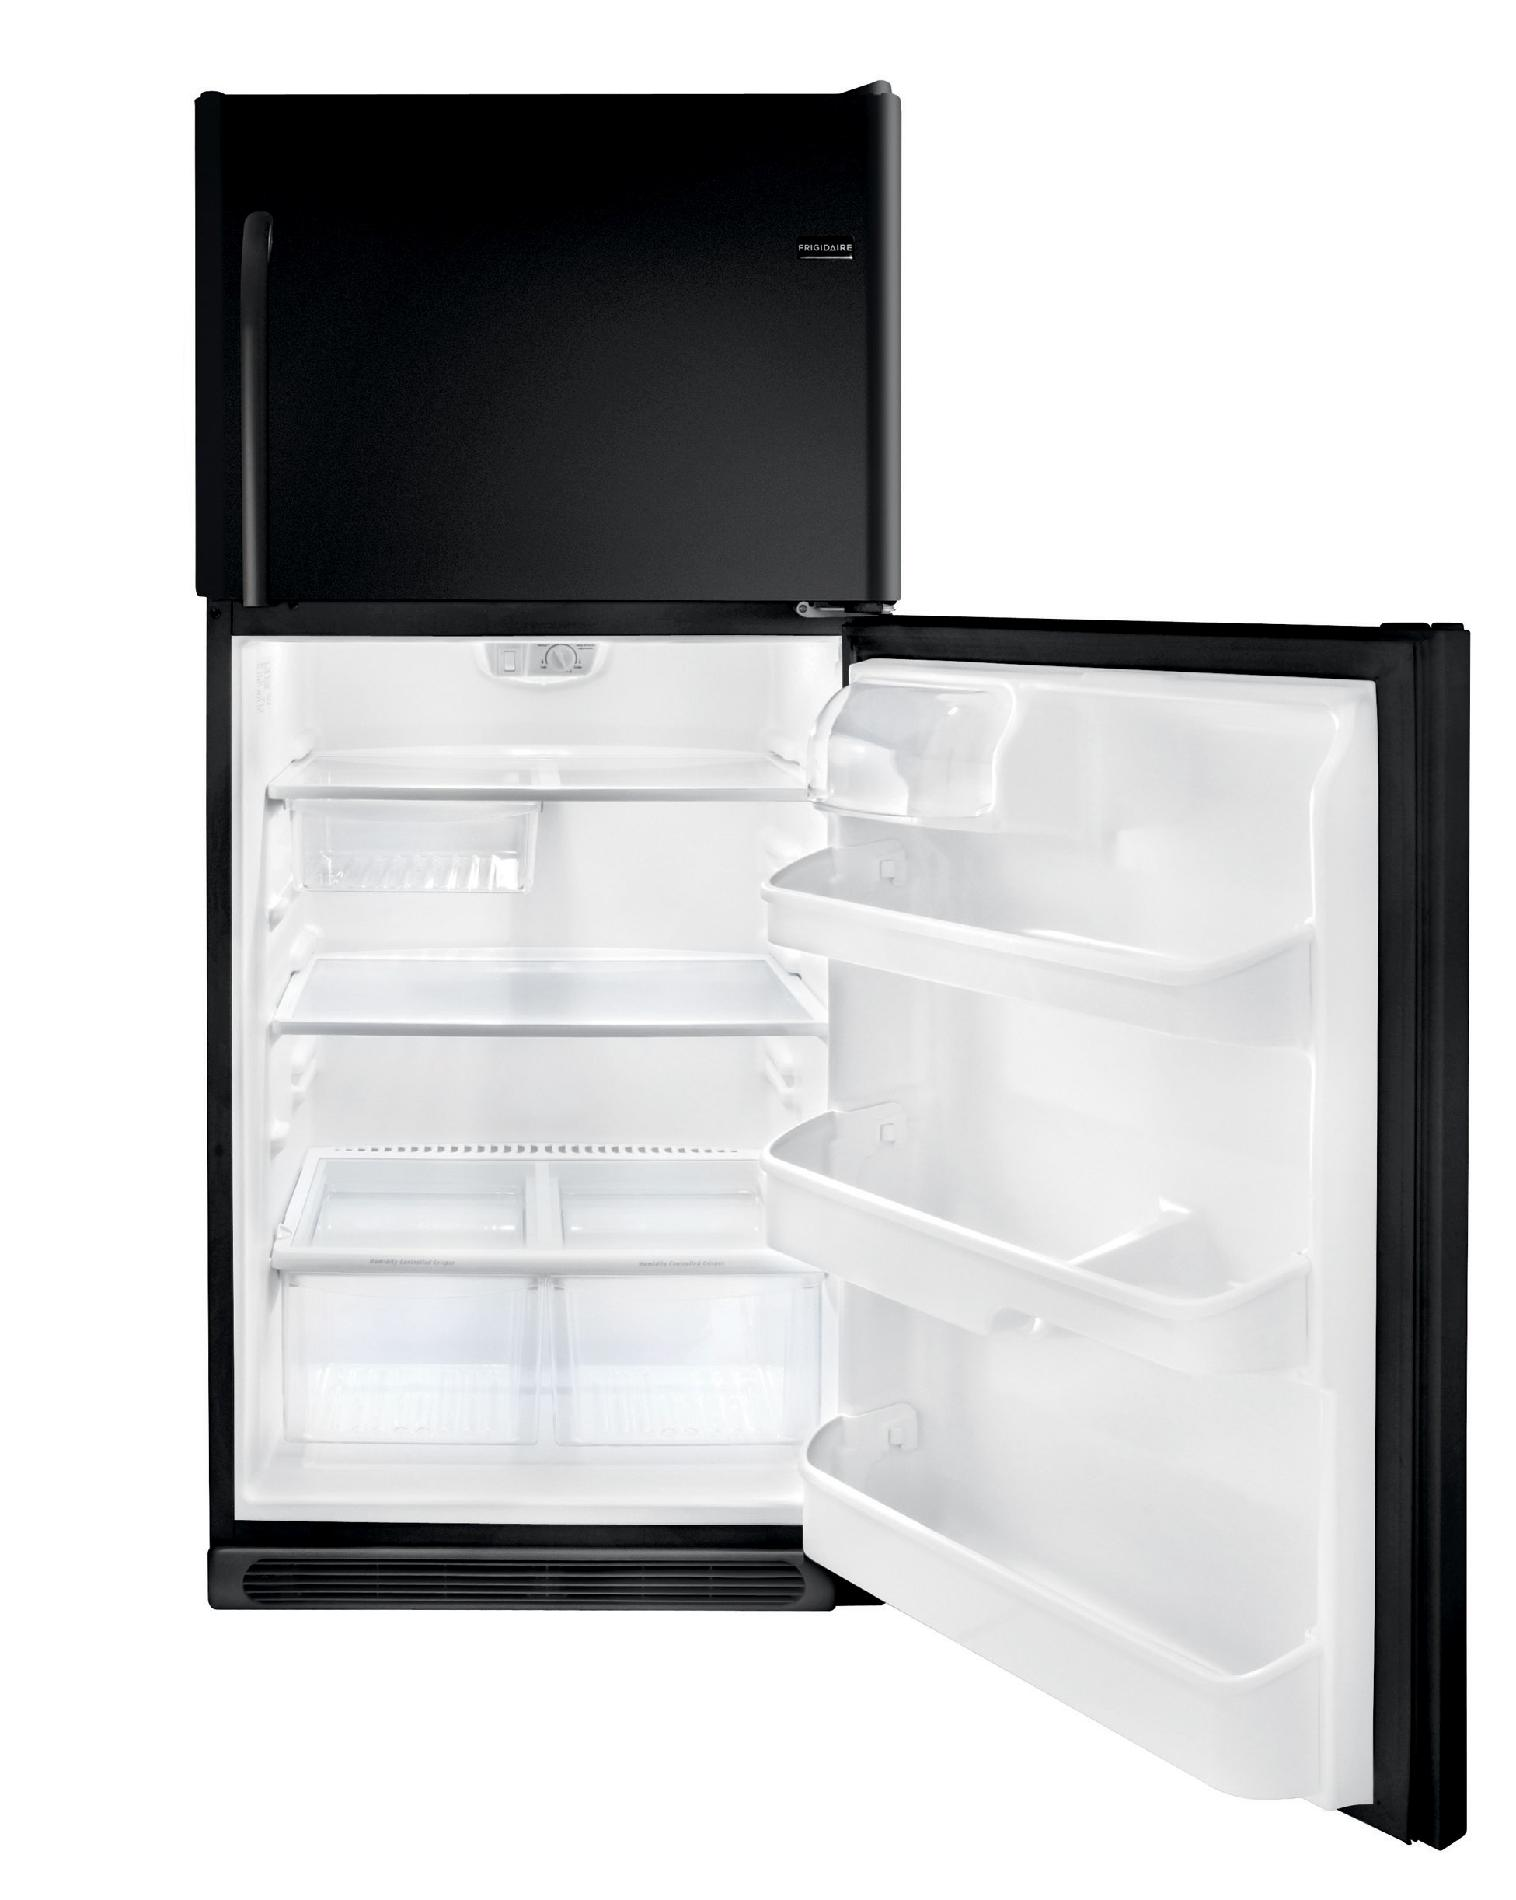 Frigidaire 20.6 cu. ft. Top-Freezer Refrigerator - Black